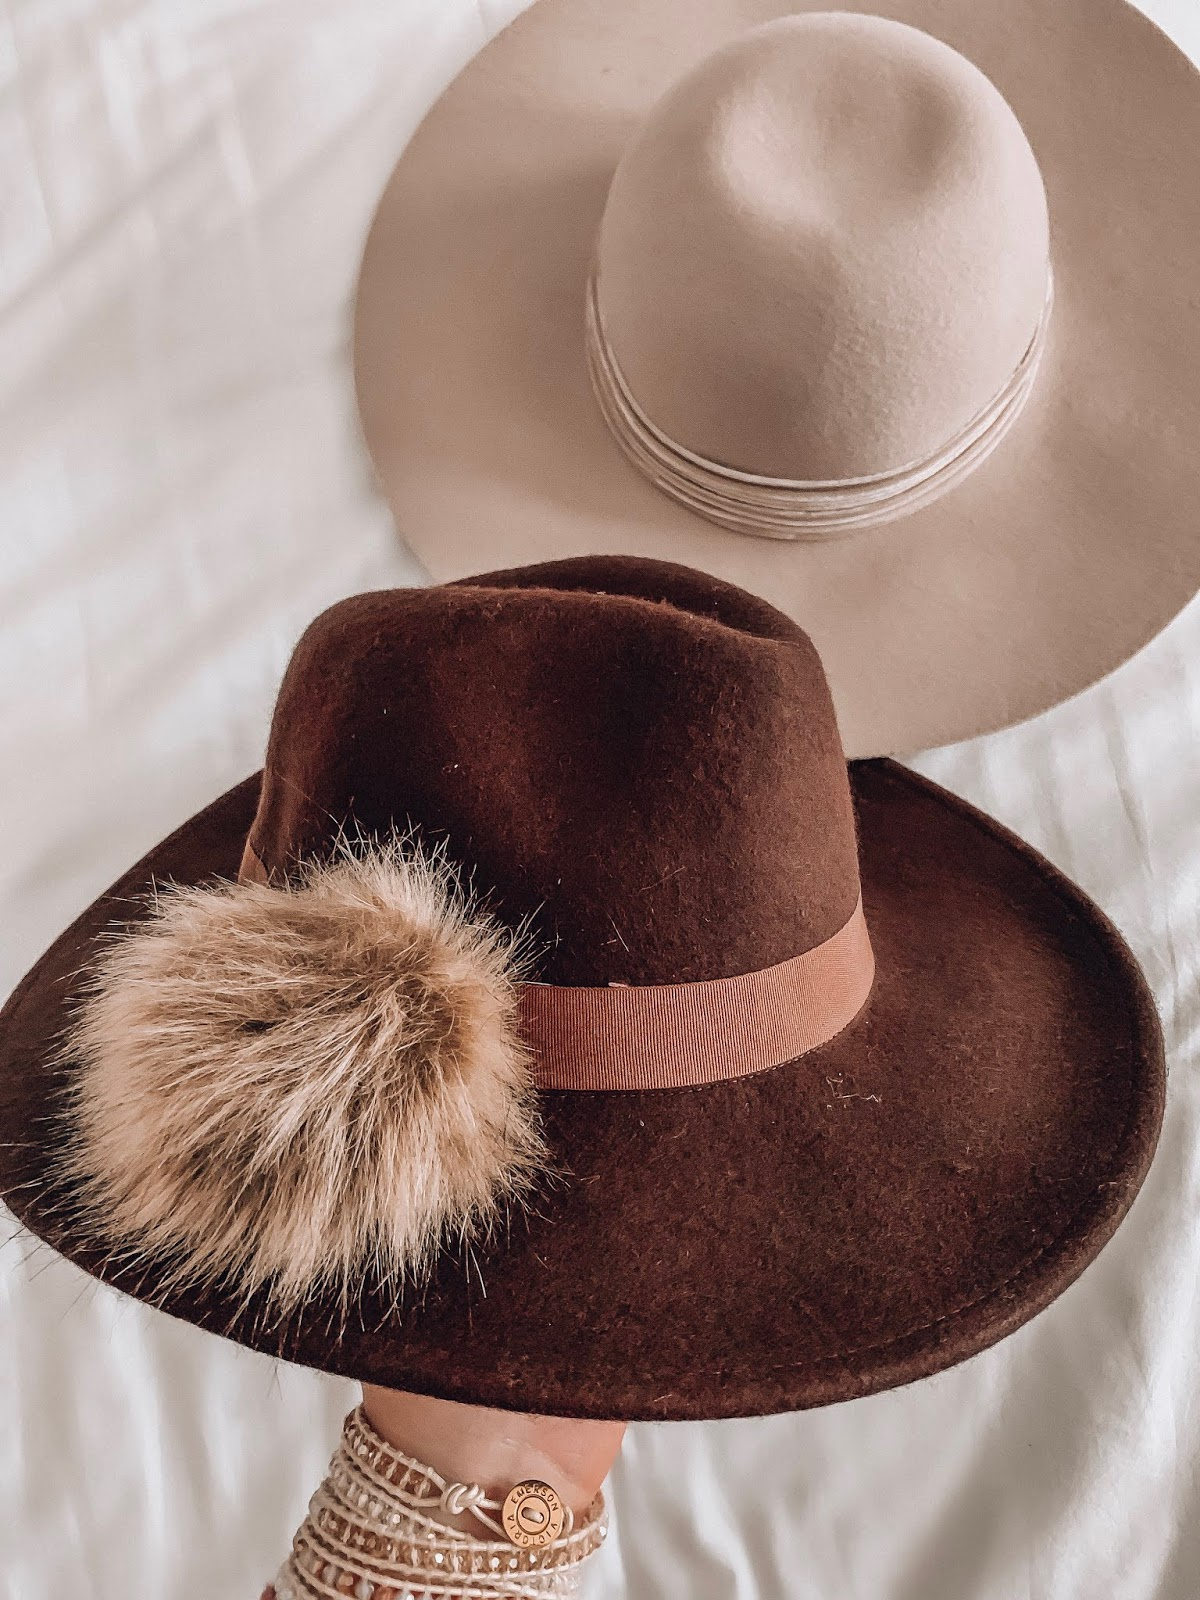 Target Fall Finds: Part Three - Target Style Hats for Fall - Something Delightful Blog #FallStyle #TargetStye